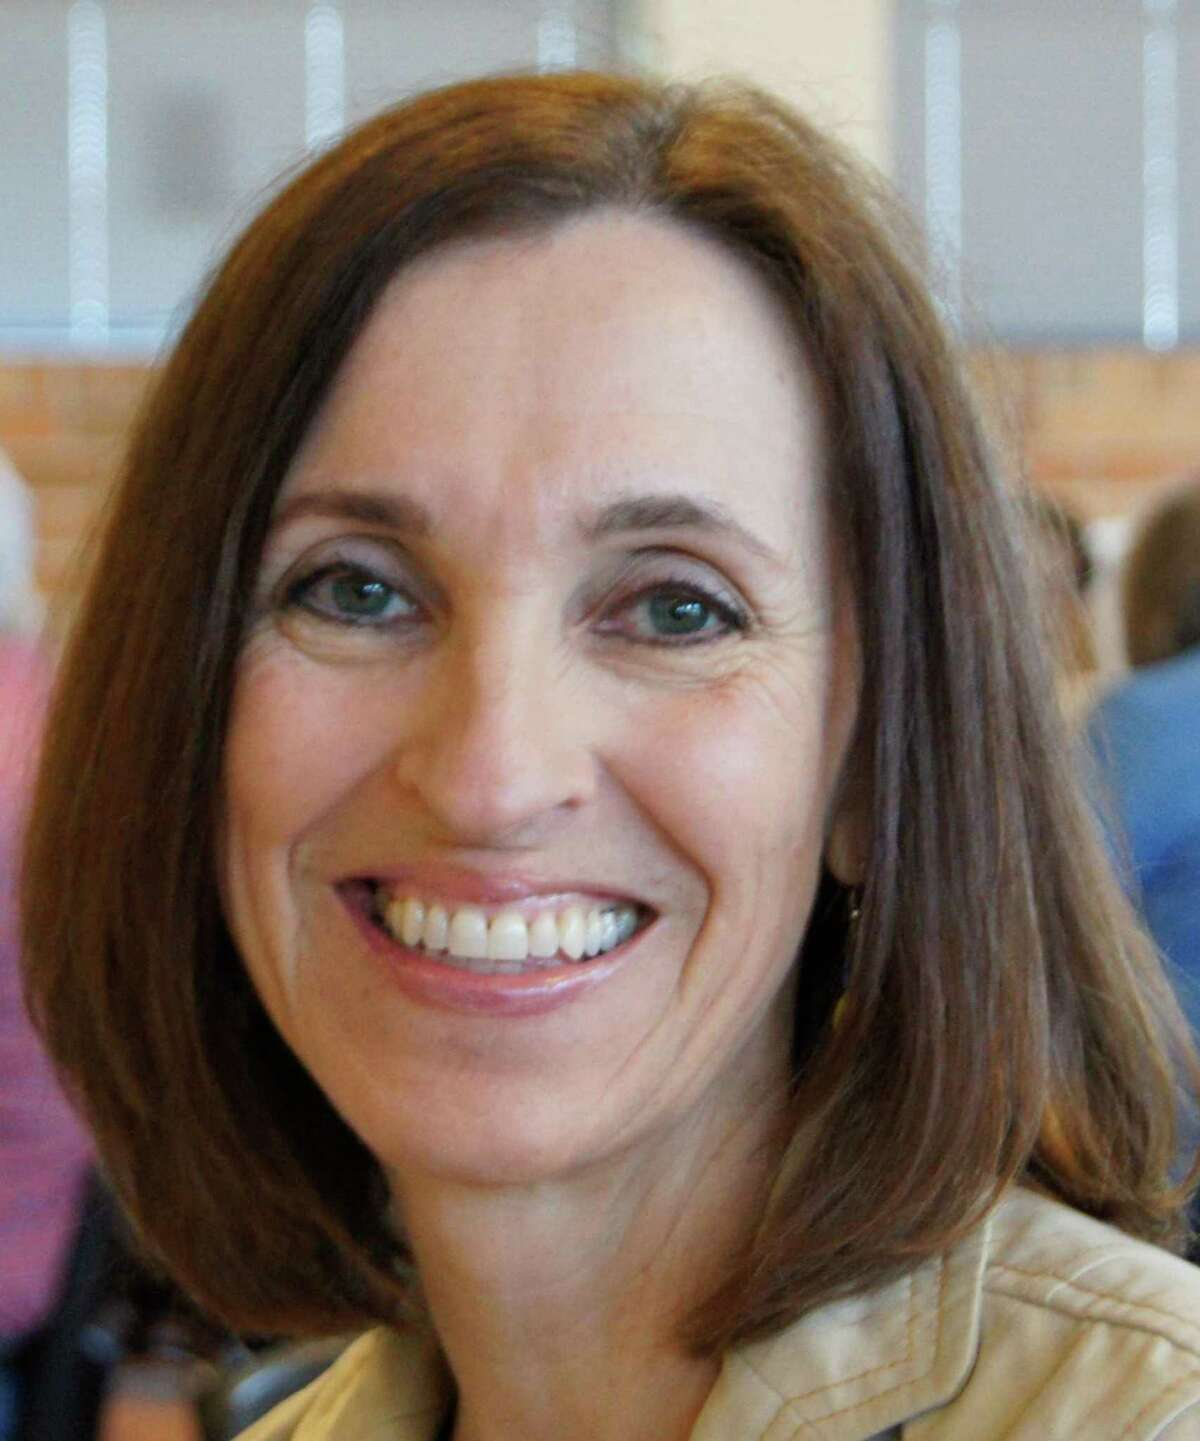 Rebecca Bell-Metereau, a film professor with Texas State University, would bring a welcome perspective to the State Board of Education.